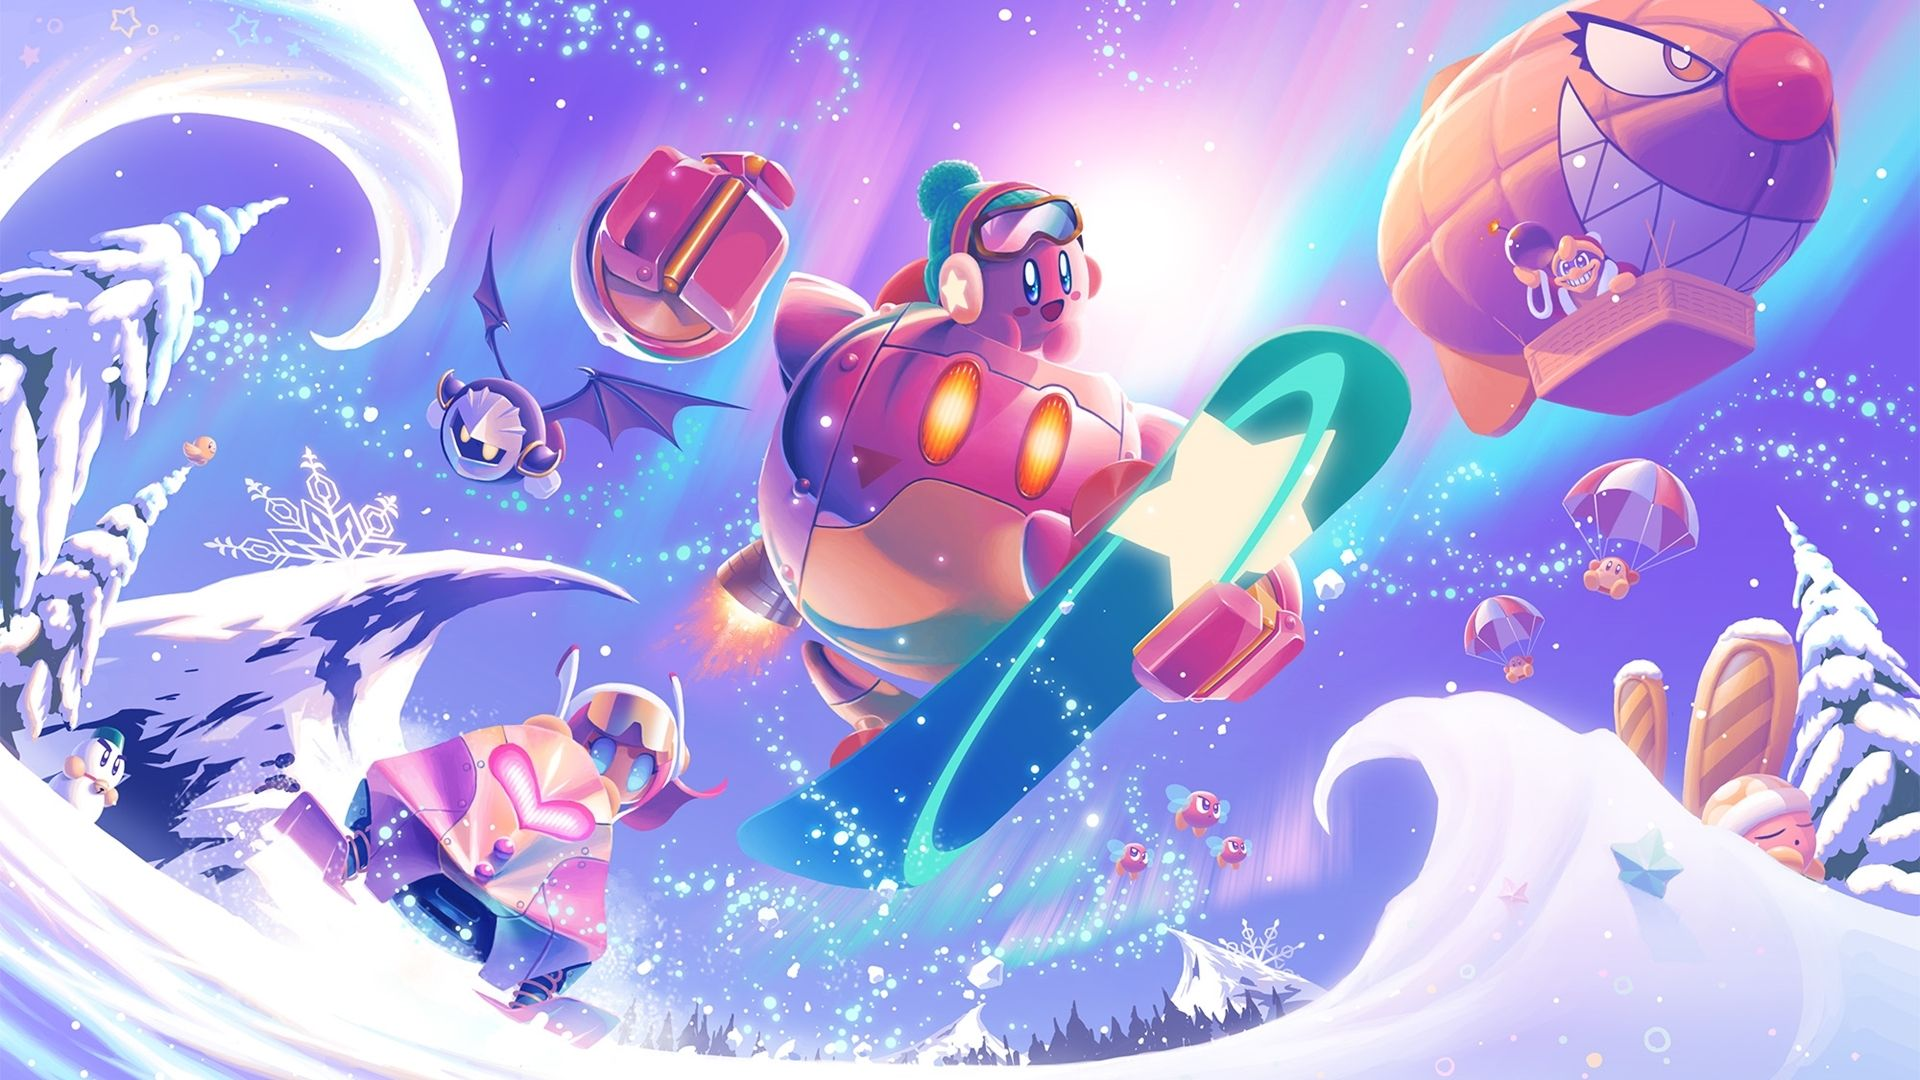 Kirby Video Game Kirby Planet Robobot Wallpaper Kirby art 1920x1080